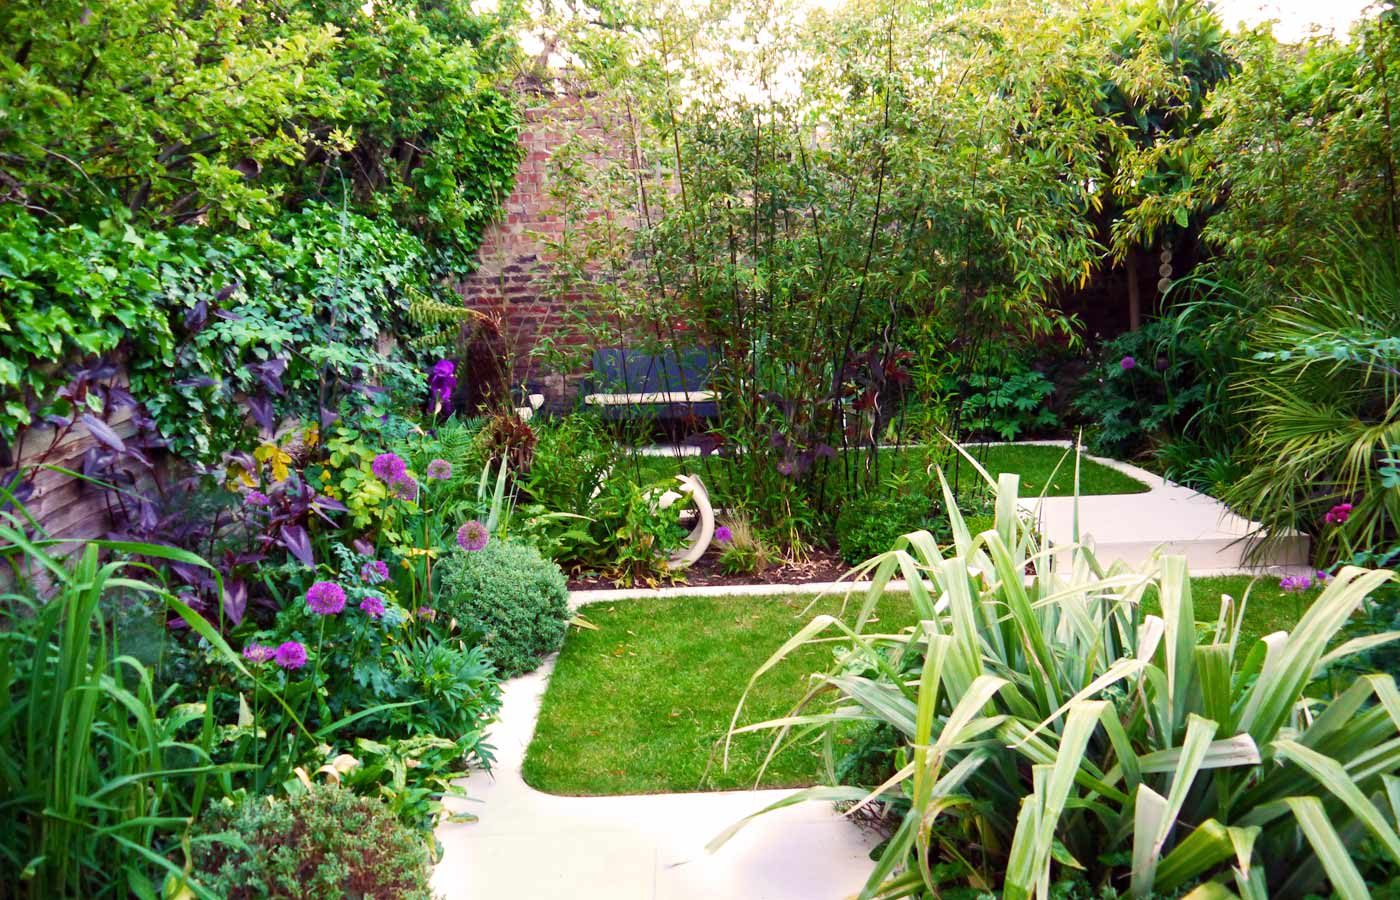 Modern town garden design north facing garden design for Small garden design uk